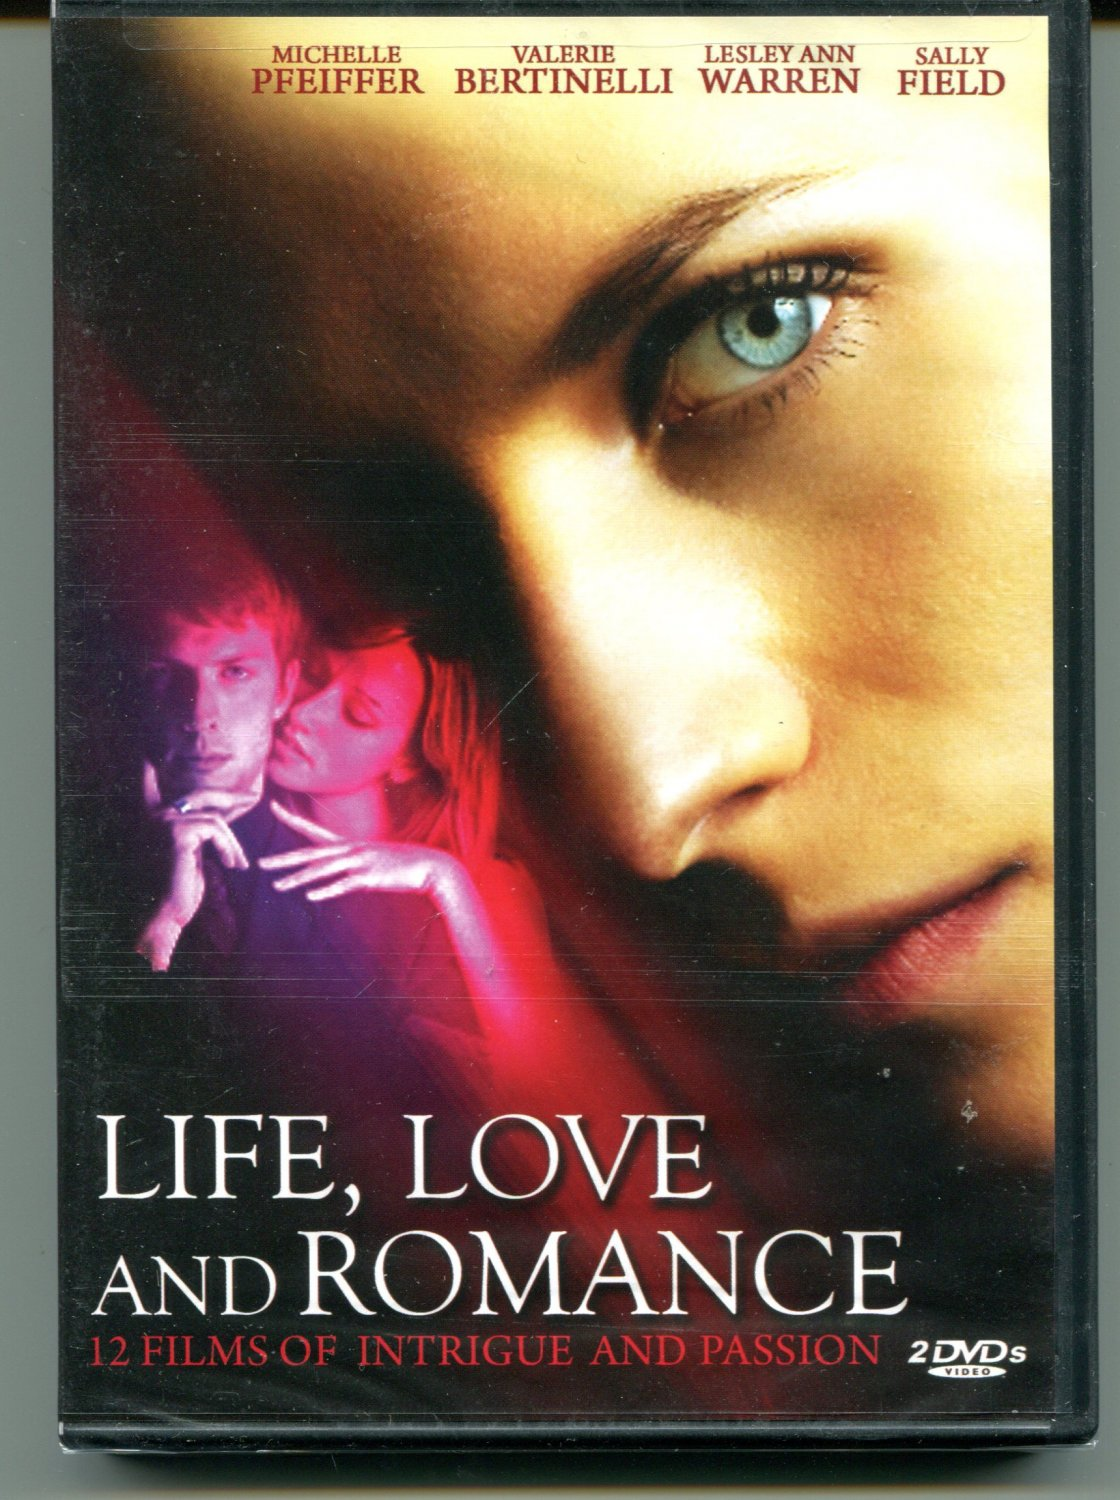 Love, Life and Romance: 12 Films of Intrigue and Passion (DVD, 2009)